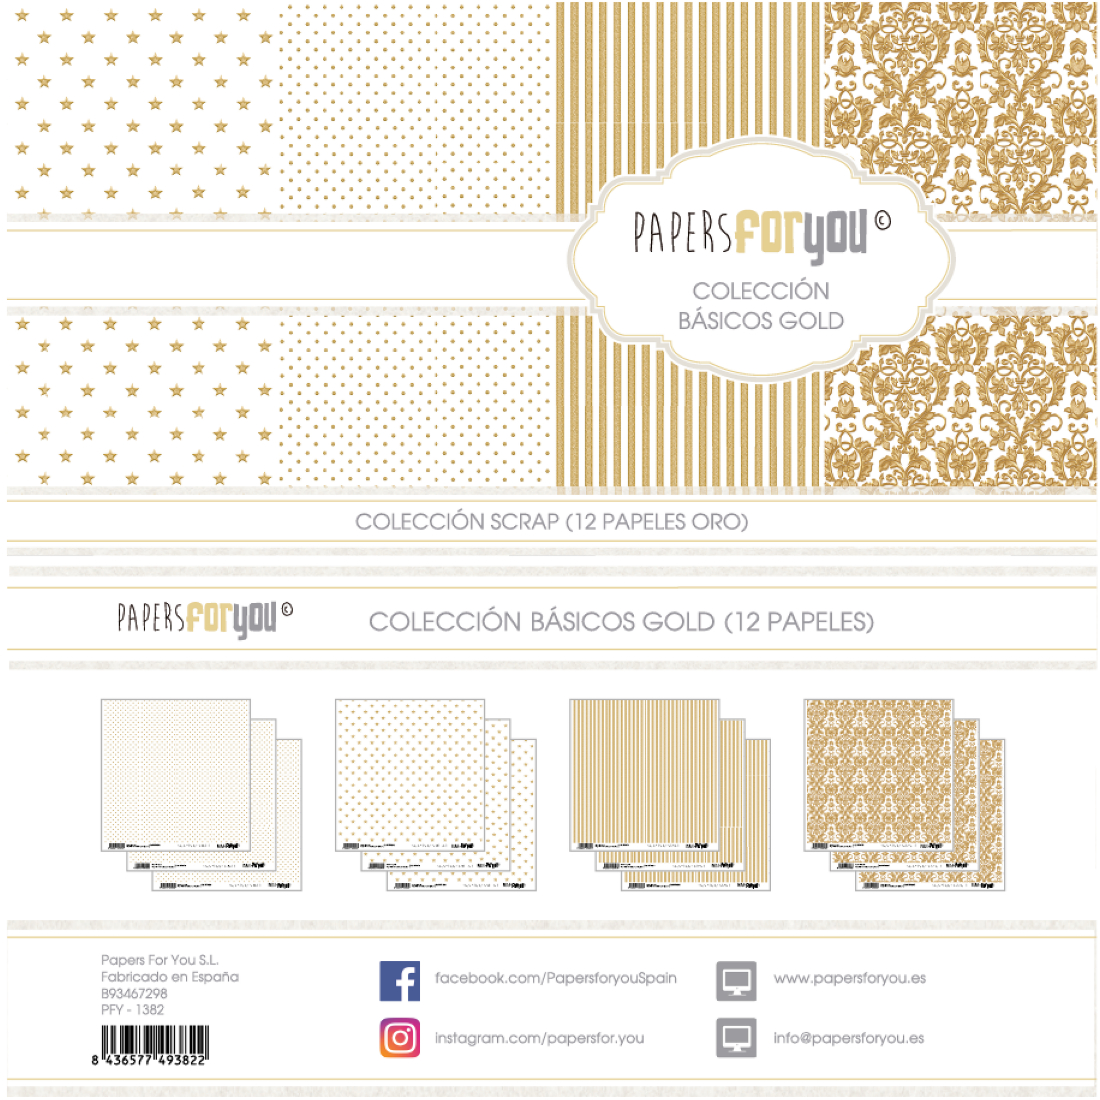 Bloco Papel Scrapbooking Basics Gold PFY-1382 papersforyou